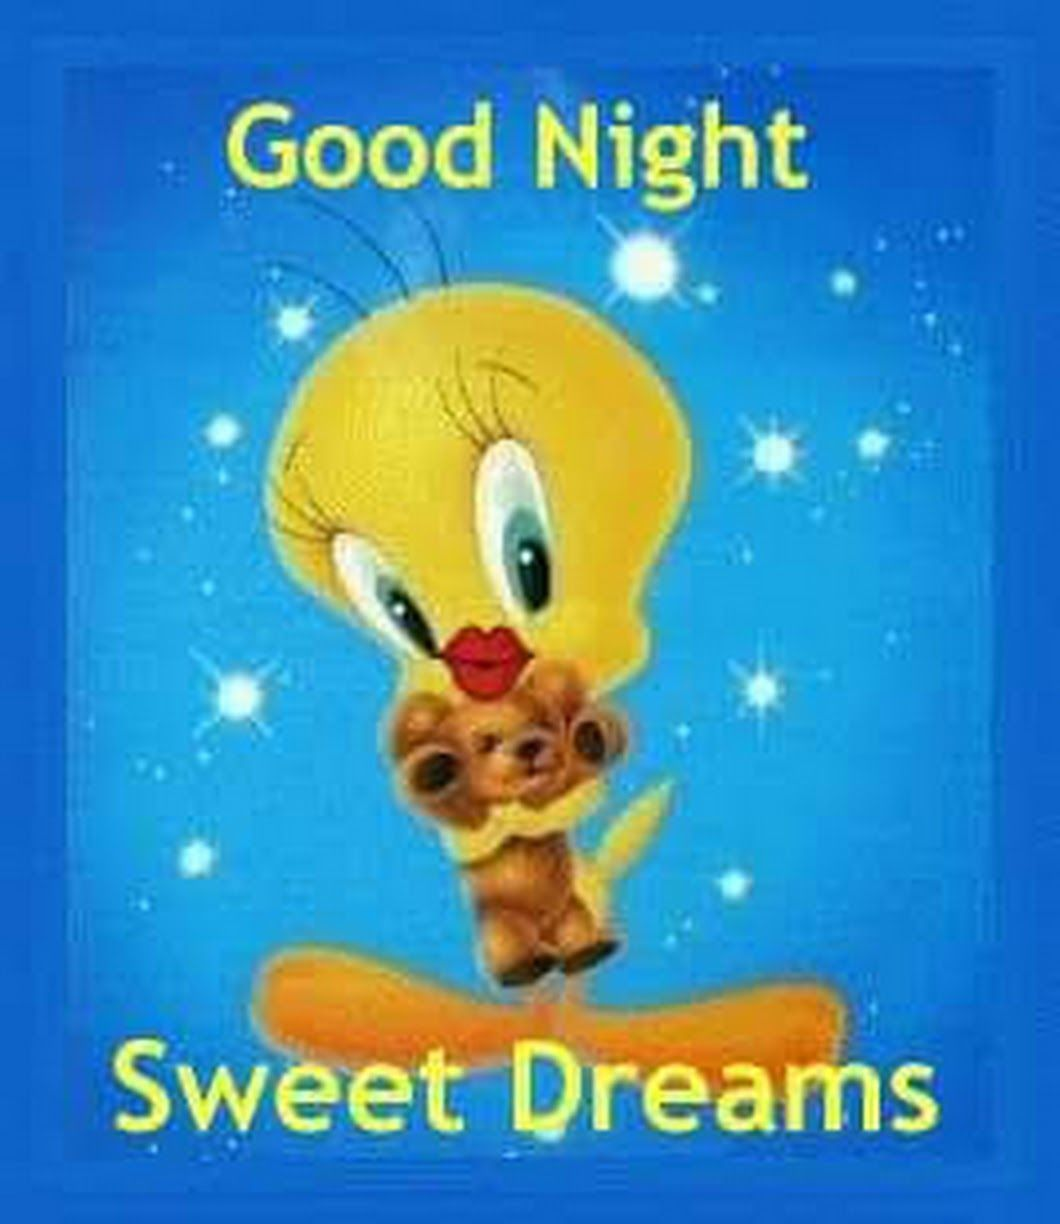 Liebes sms gute nacht (With images) | Good night greetings